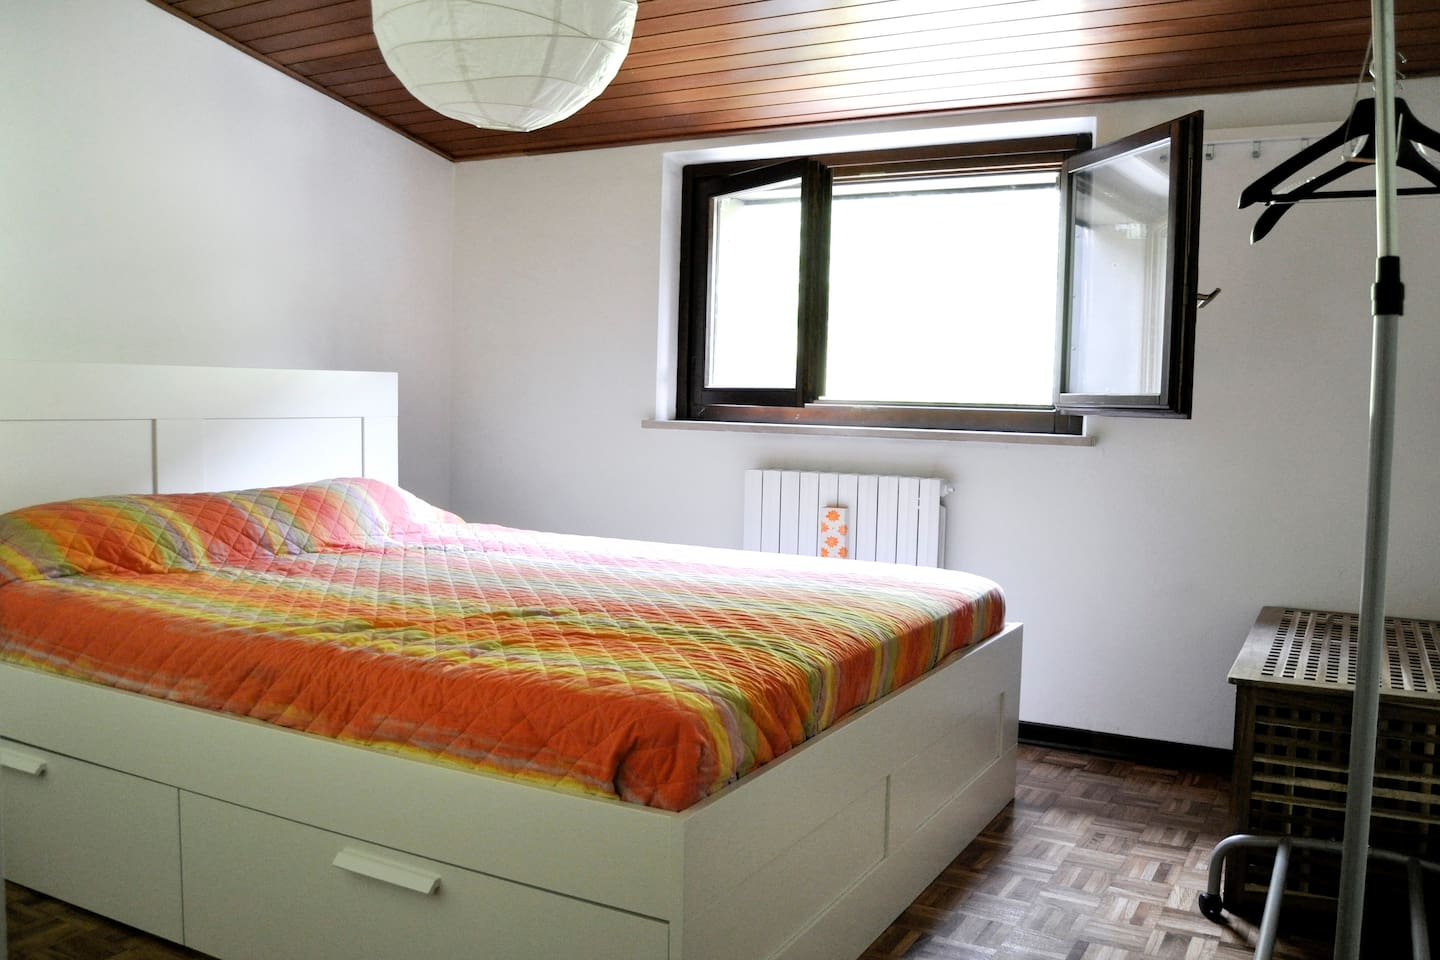 This is the romantic room where you will rest after skiing, biking or hiking.....very warm in winter, fresh in summer!